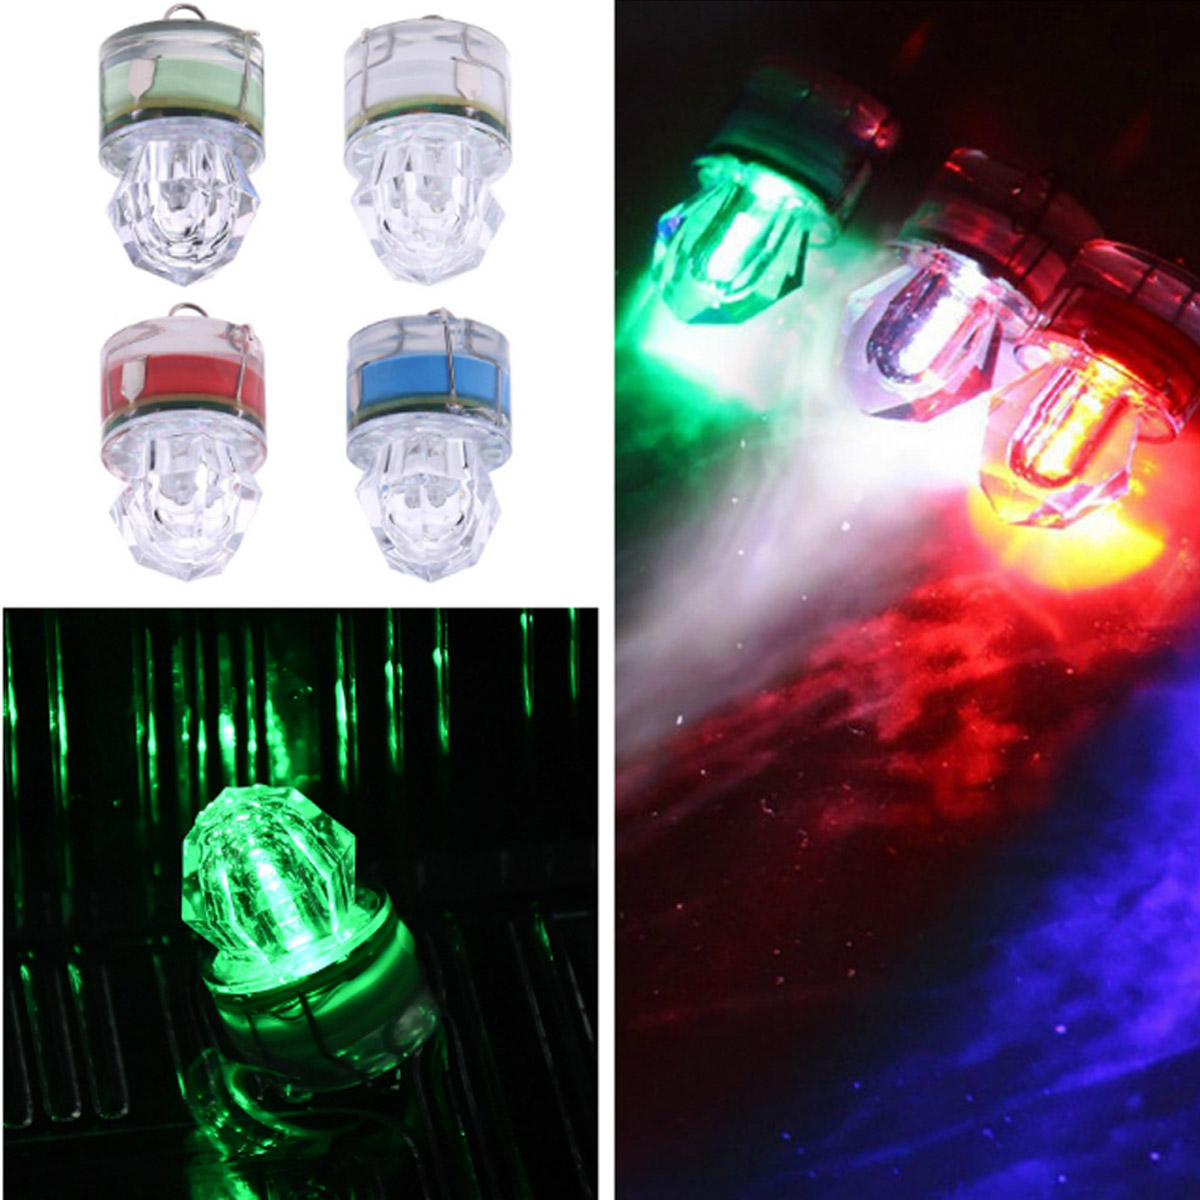 15x  Mini ABS LED Waterproof Fishing Bait Light Squid Fishing Lures Bait Deep Drop Diamond Underwater Fish Lure Lamp Lights Lamp